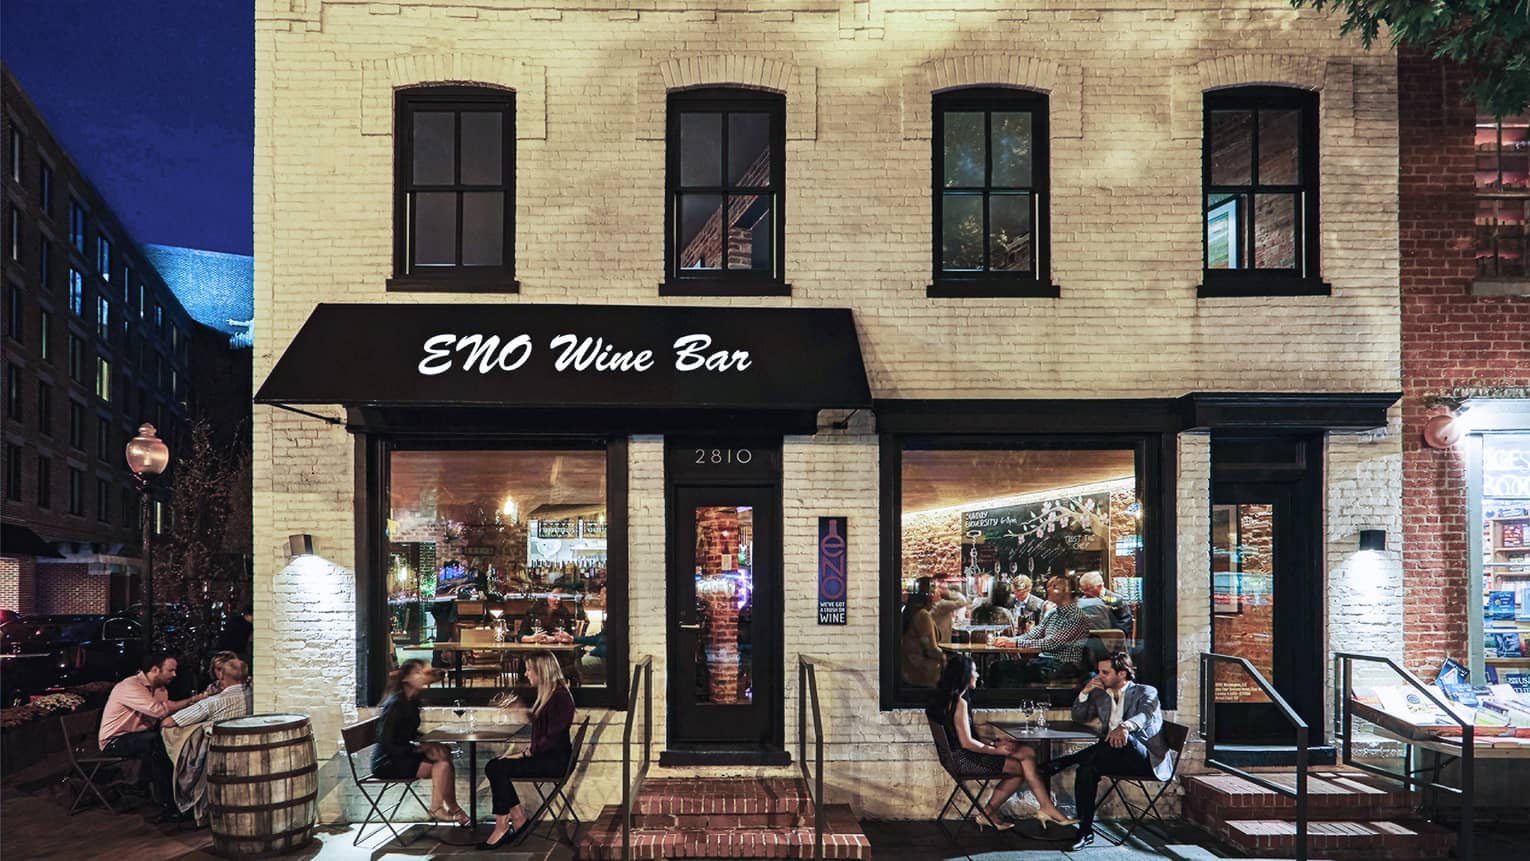 People dine on patio under ENO Wine Bar sign on black awning, white brick building exterior at night